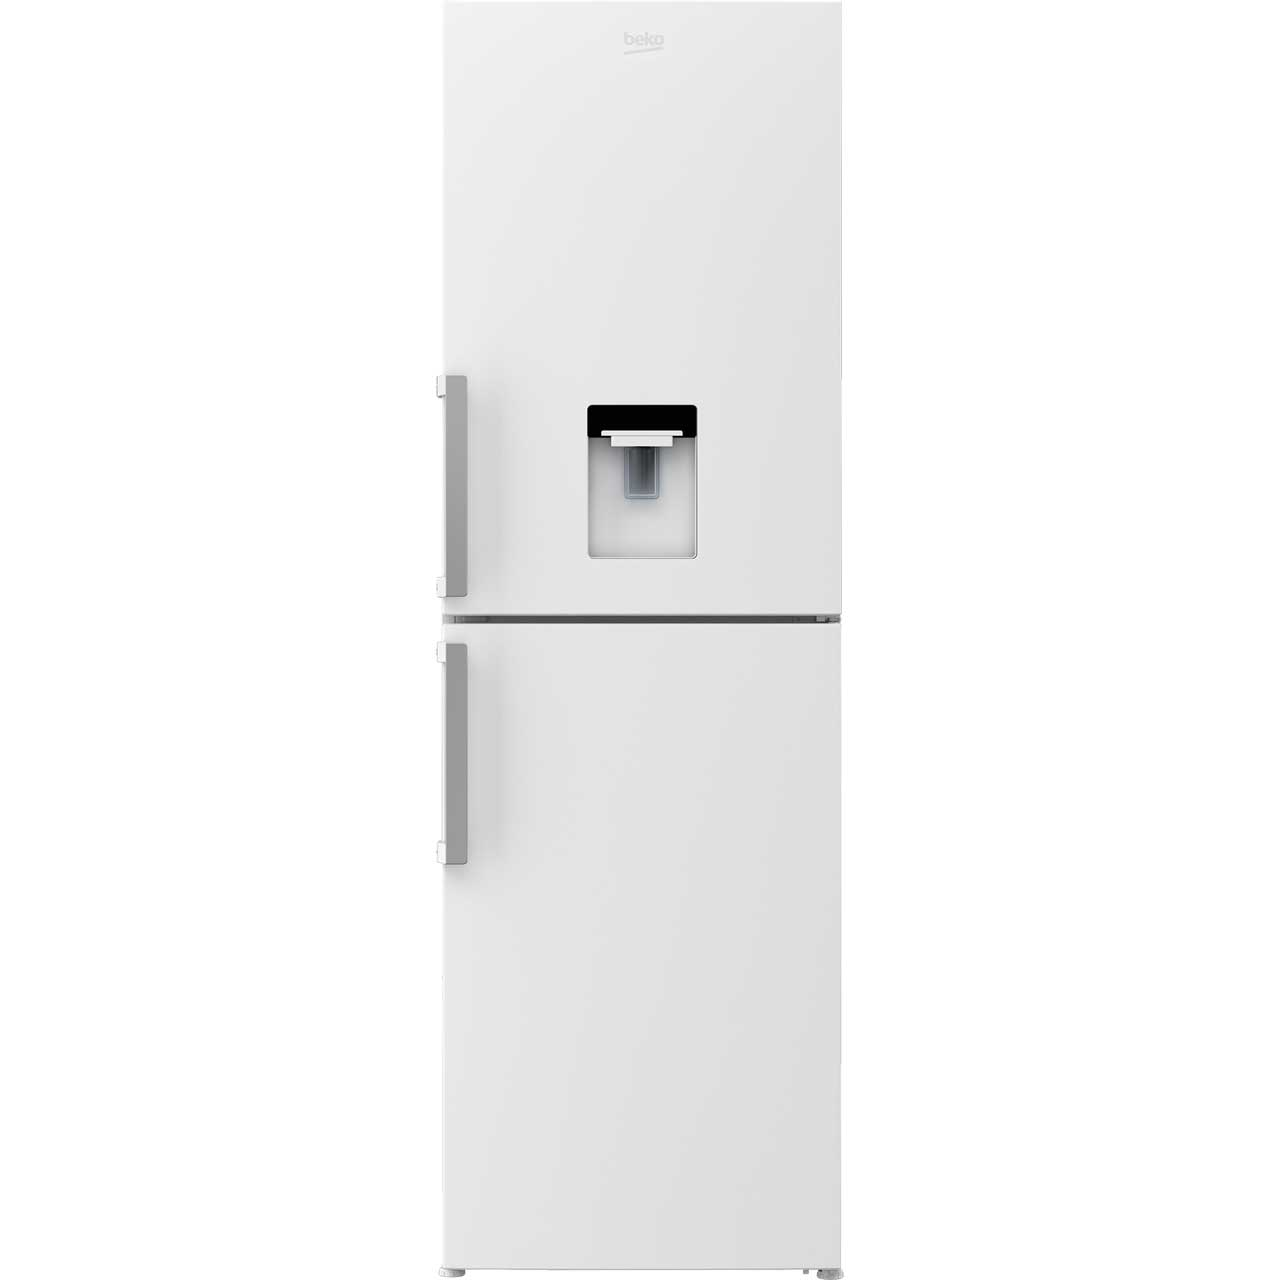 Beko CFP1691DW Free Standing Fridge Freezer Frost Free in White